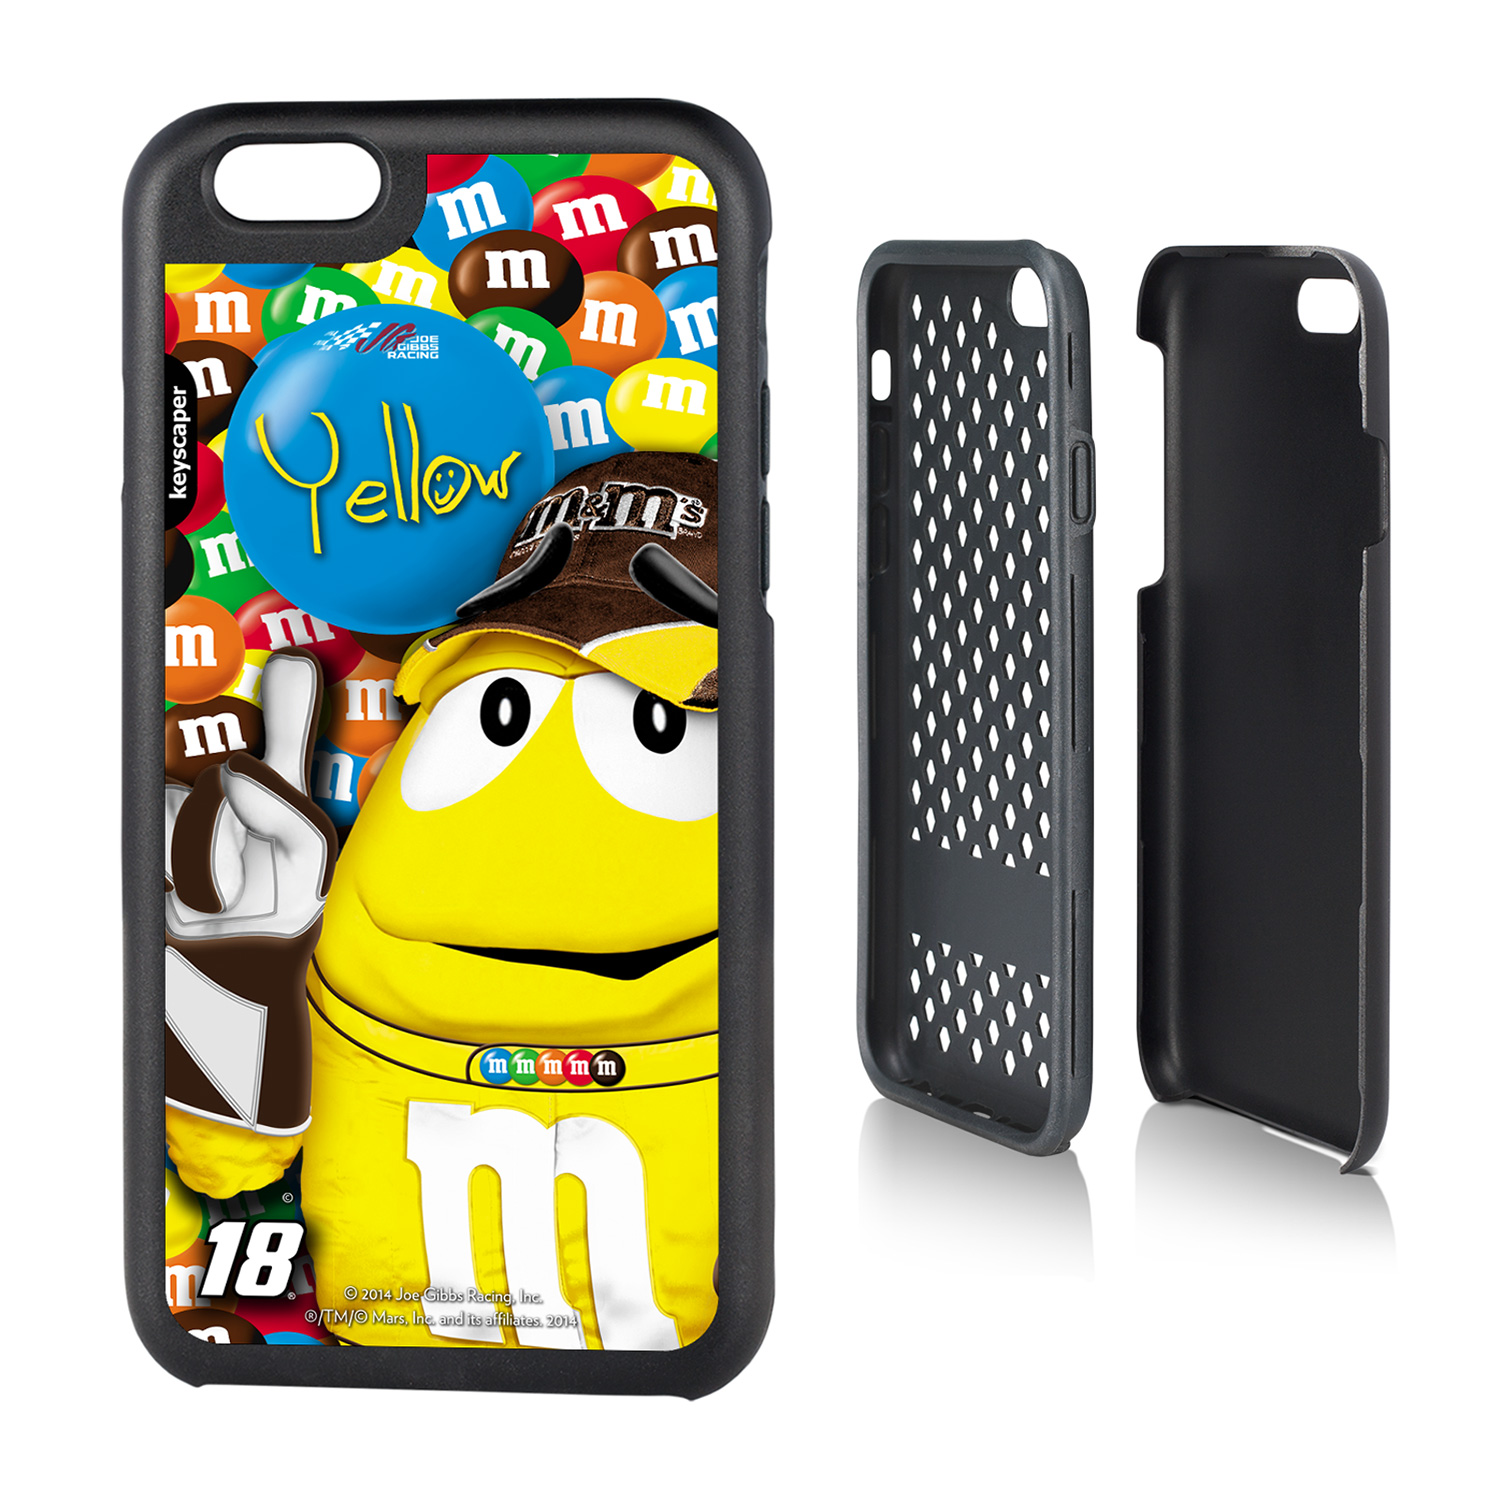 Kyle Busch iPhone 6 and 6S Rugged Case NASCAR